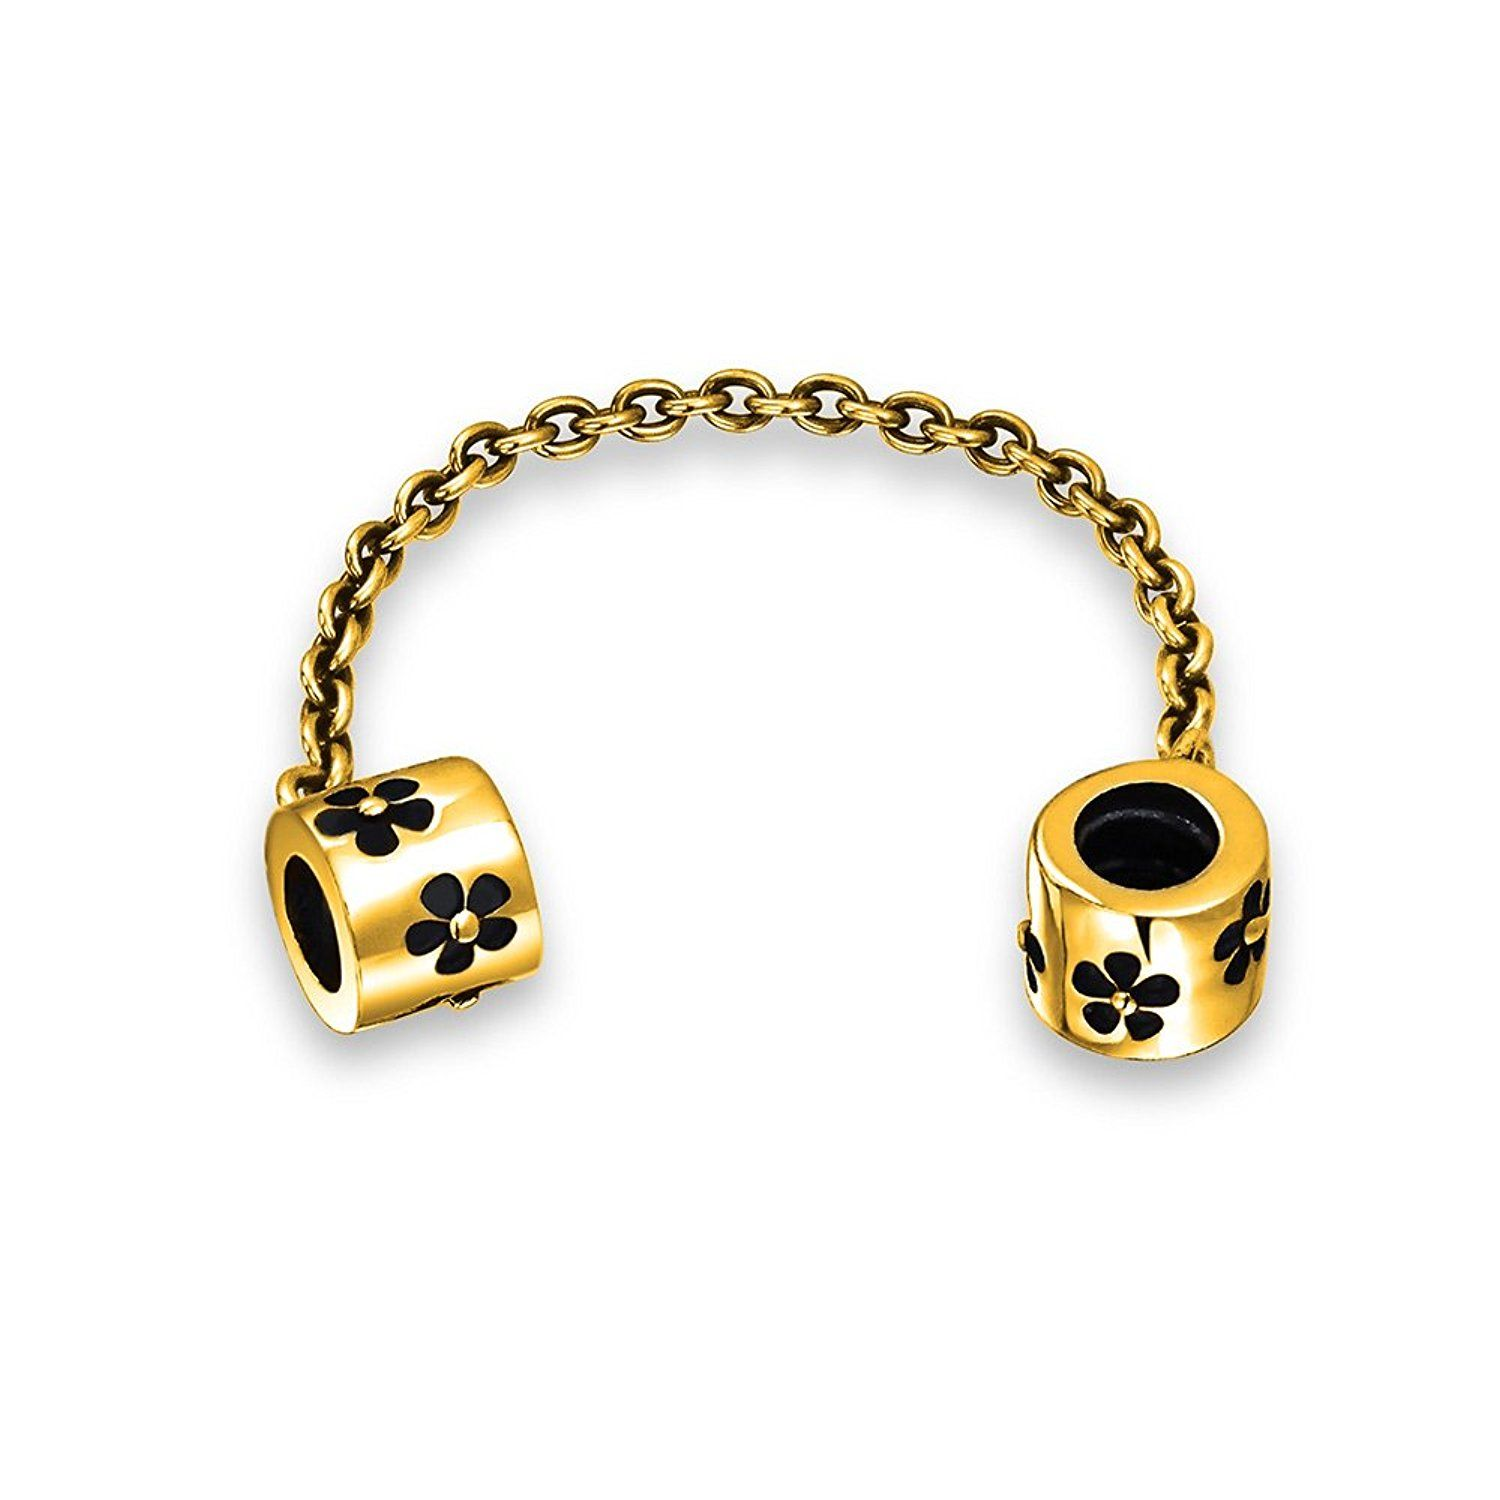 Bling jewelry daisy flower safety chain bead charm gold